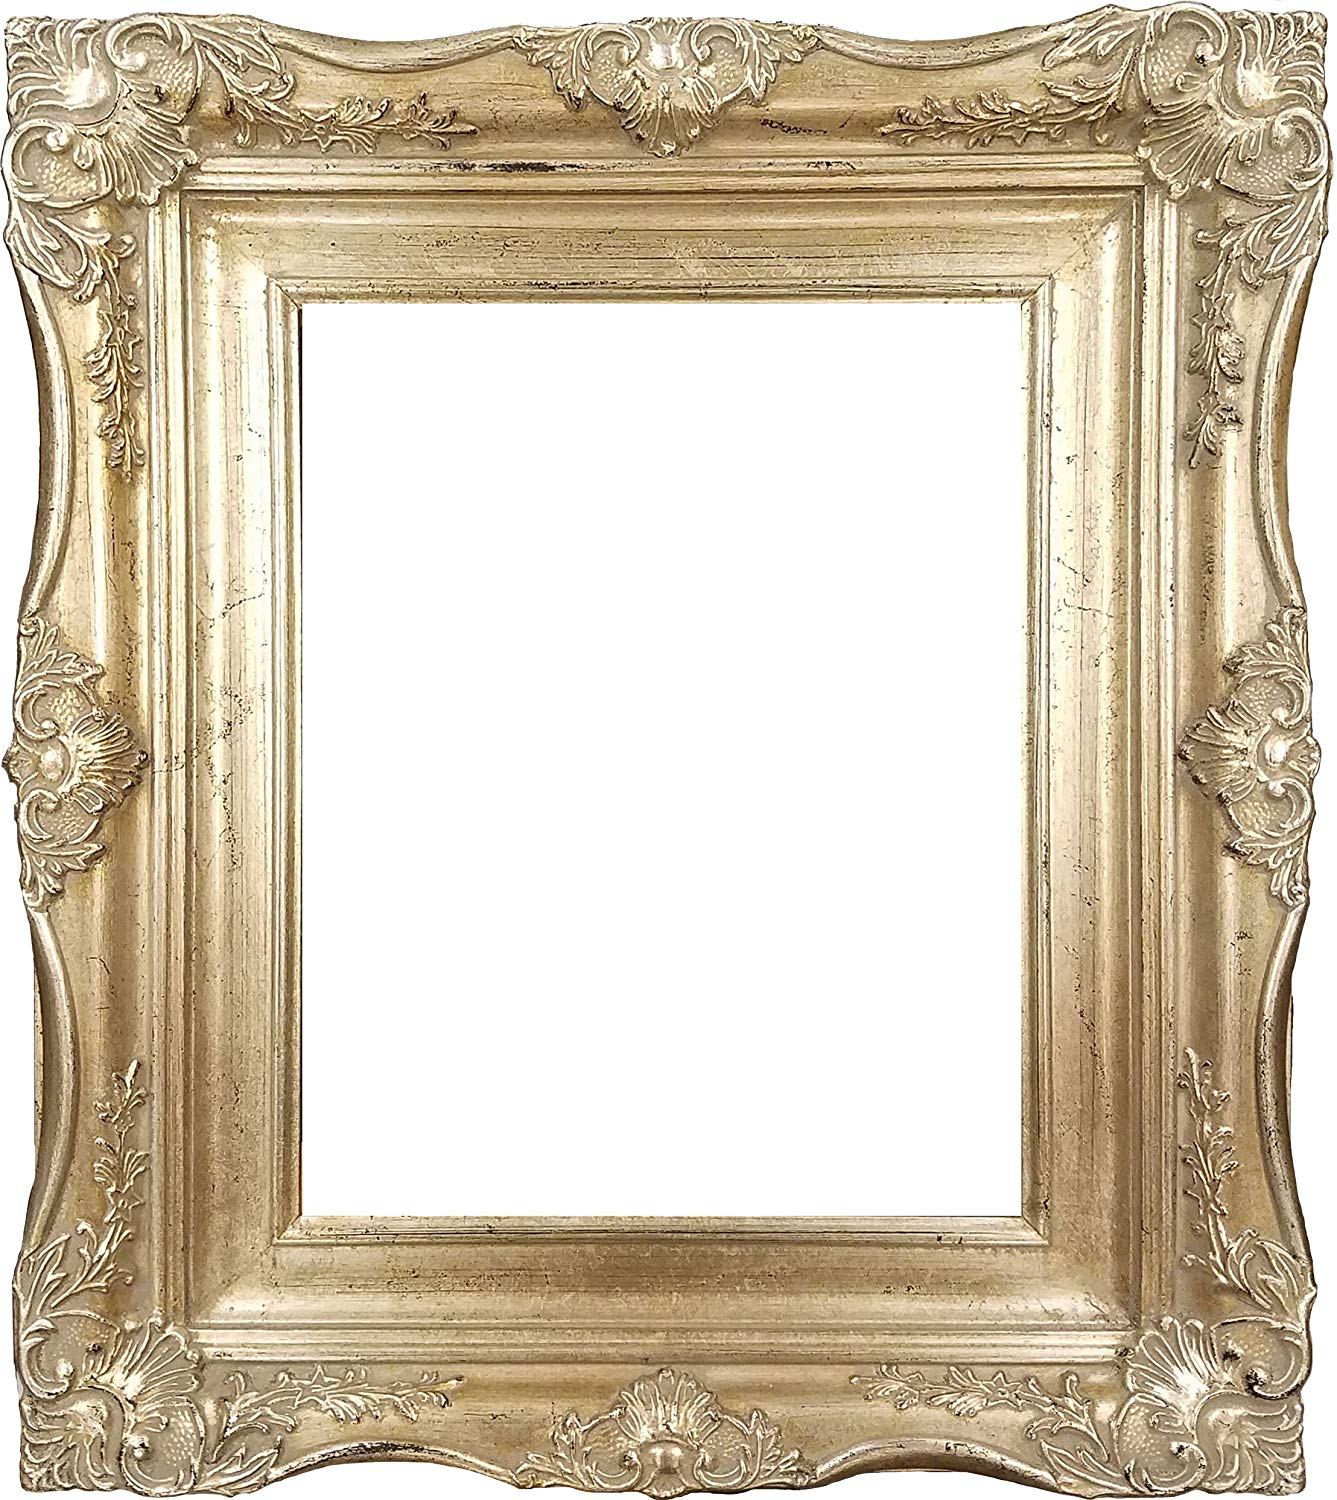 "4"" Vintage Ornate Baroque French Silver Picture Frame (8x10 Inch)"